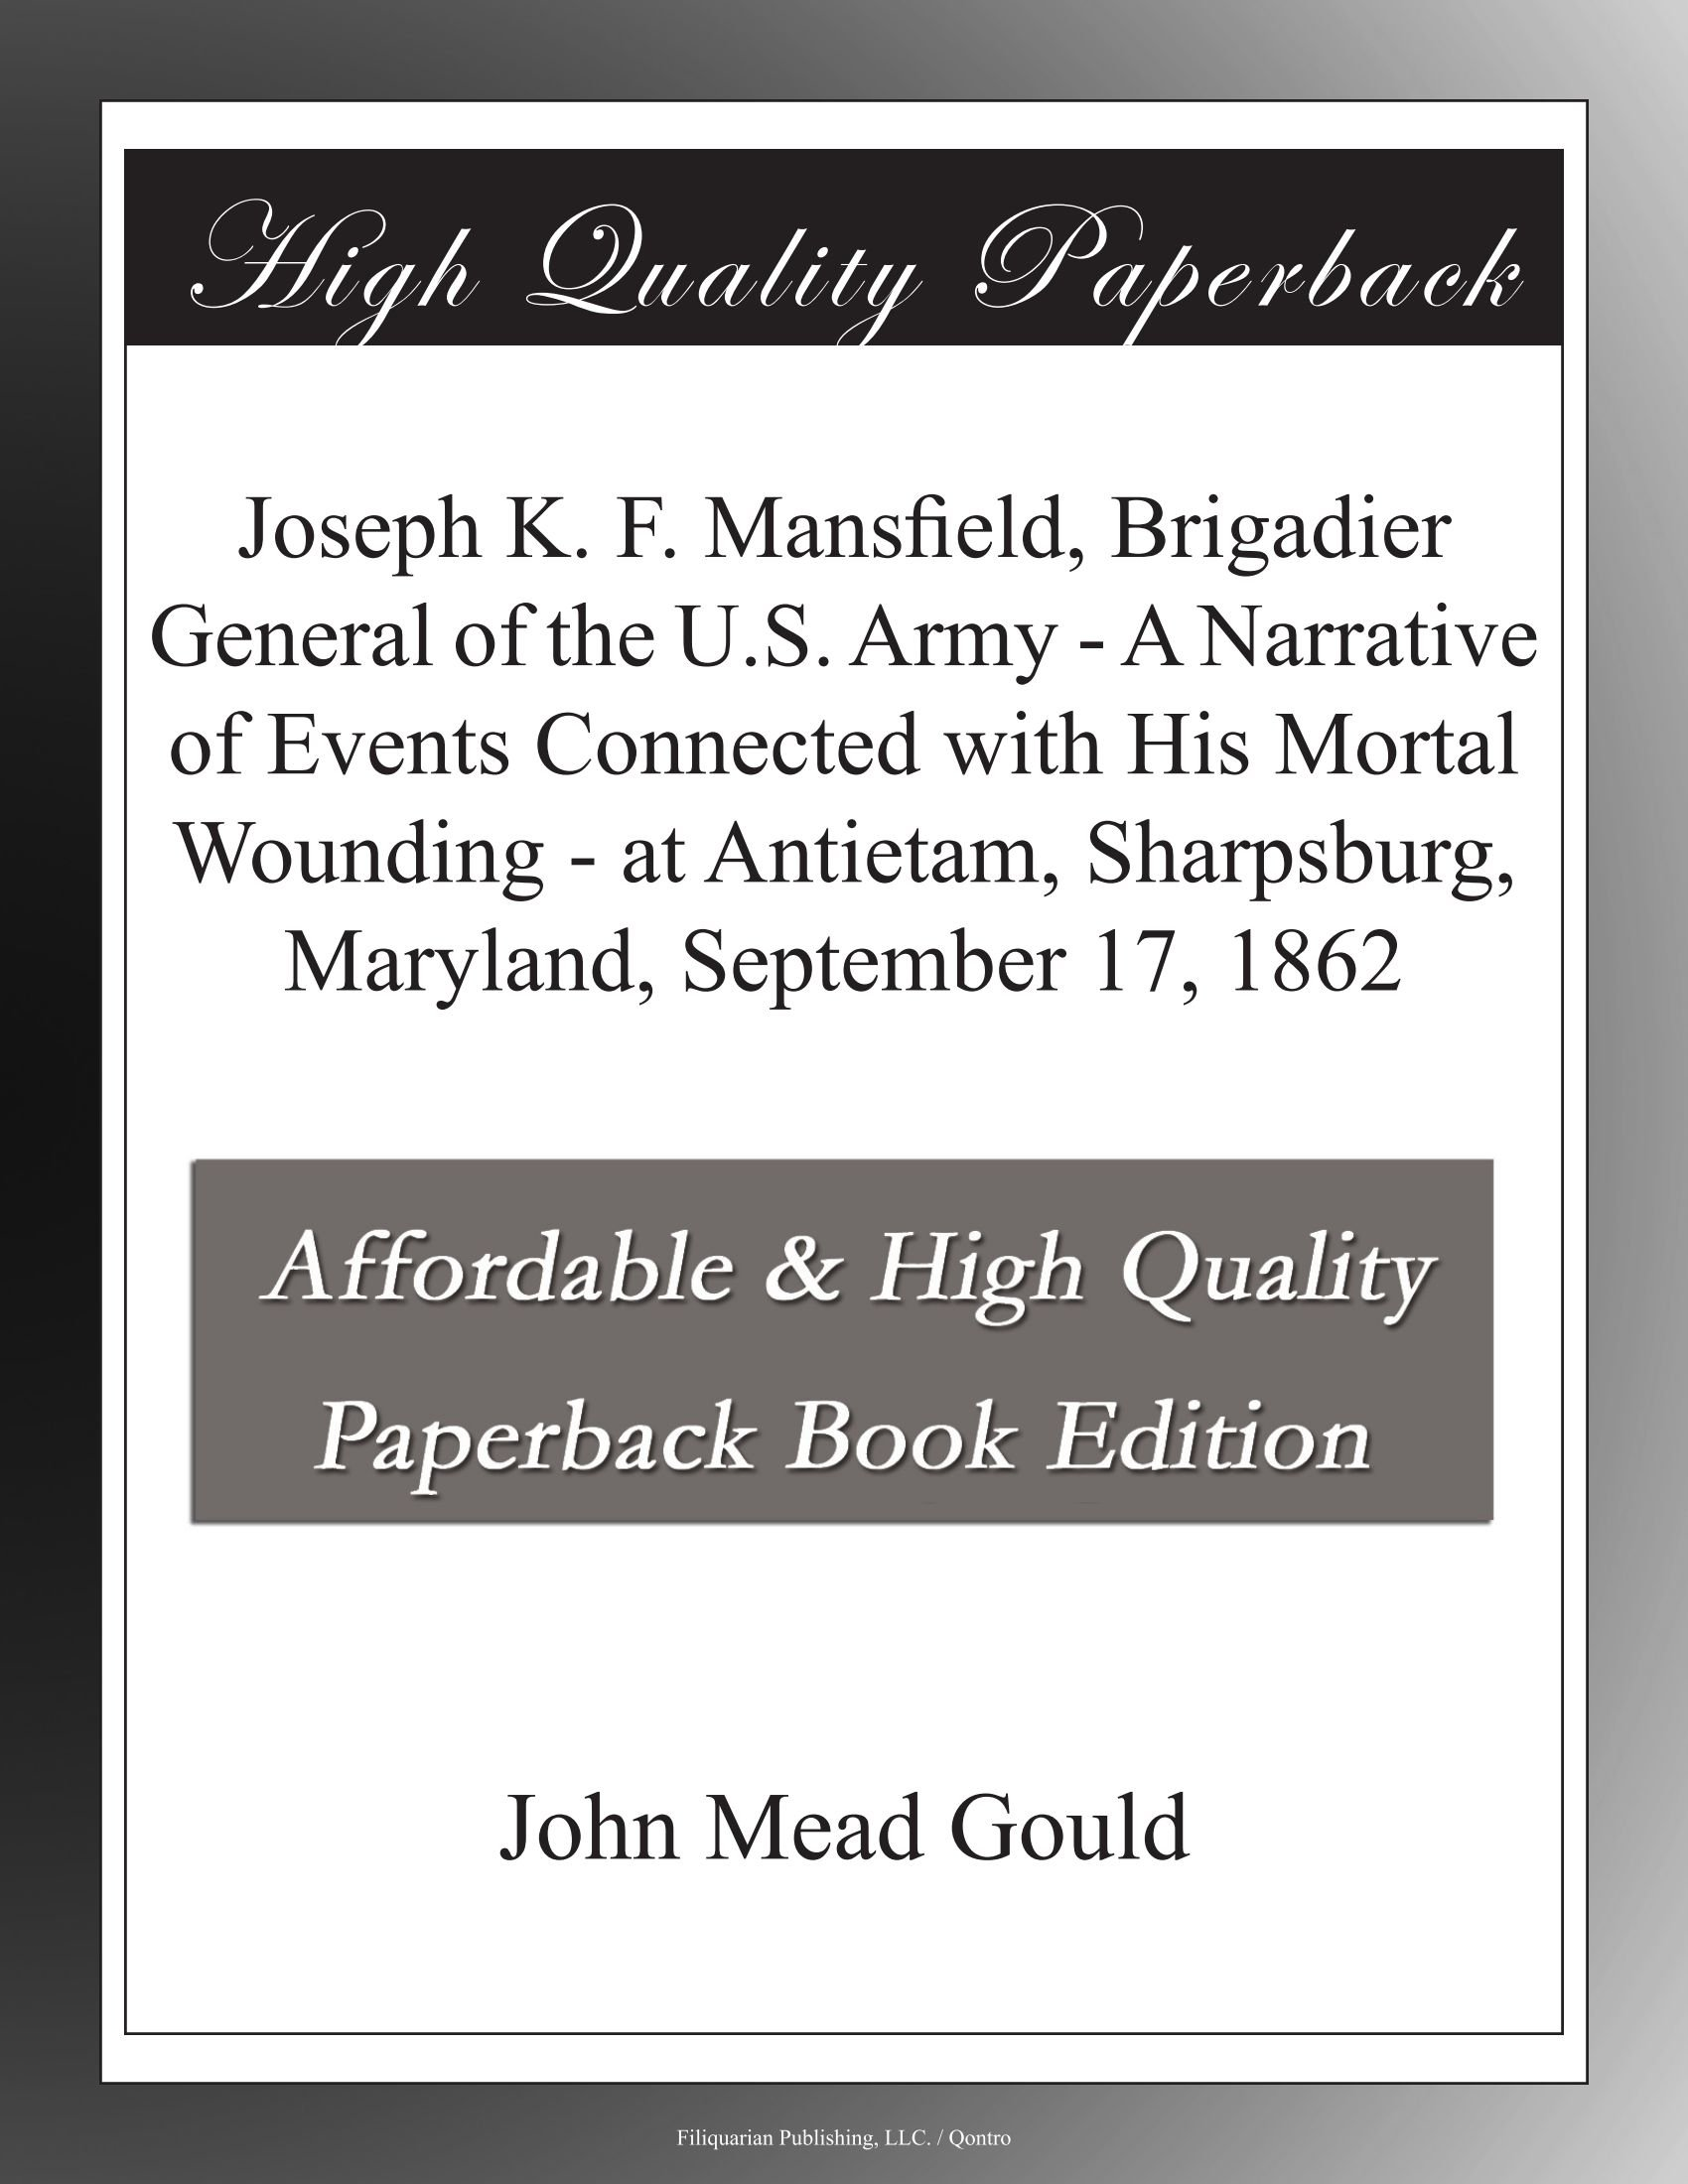 Download Joseph K. F. Mansfield, Brigadier General of the U.S. Army - A Narrative of Events Connected with His Mortal Wounding - at Antietam, Sharpsburg, Maryland, September 17, 1862 PDF